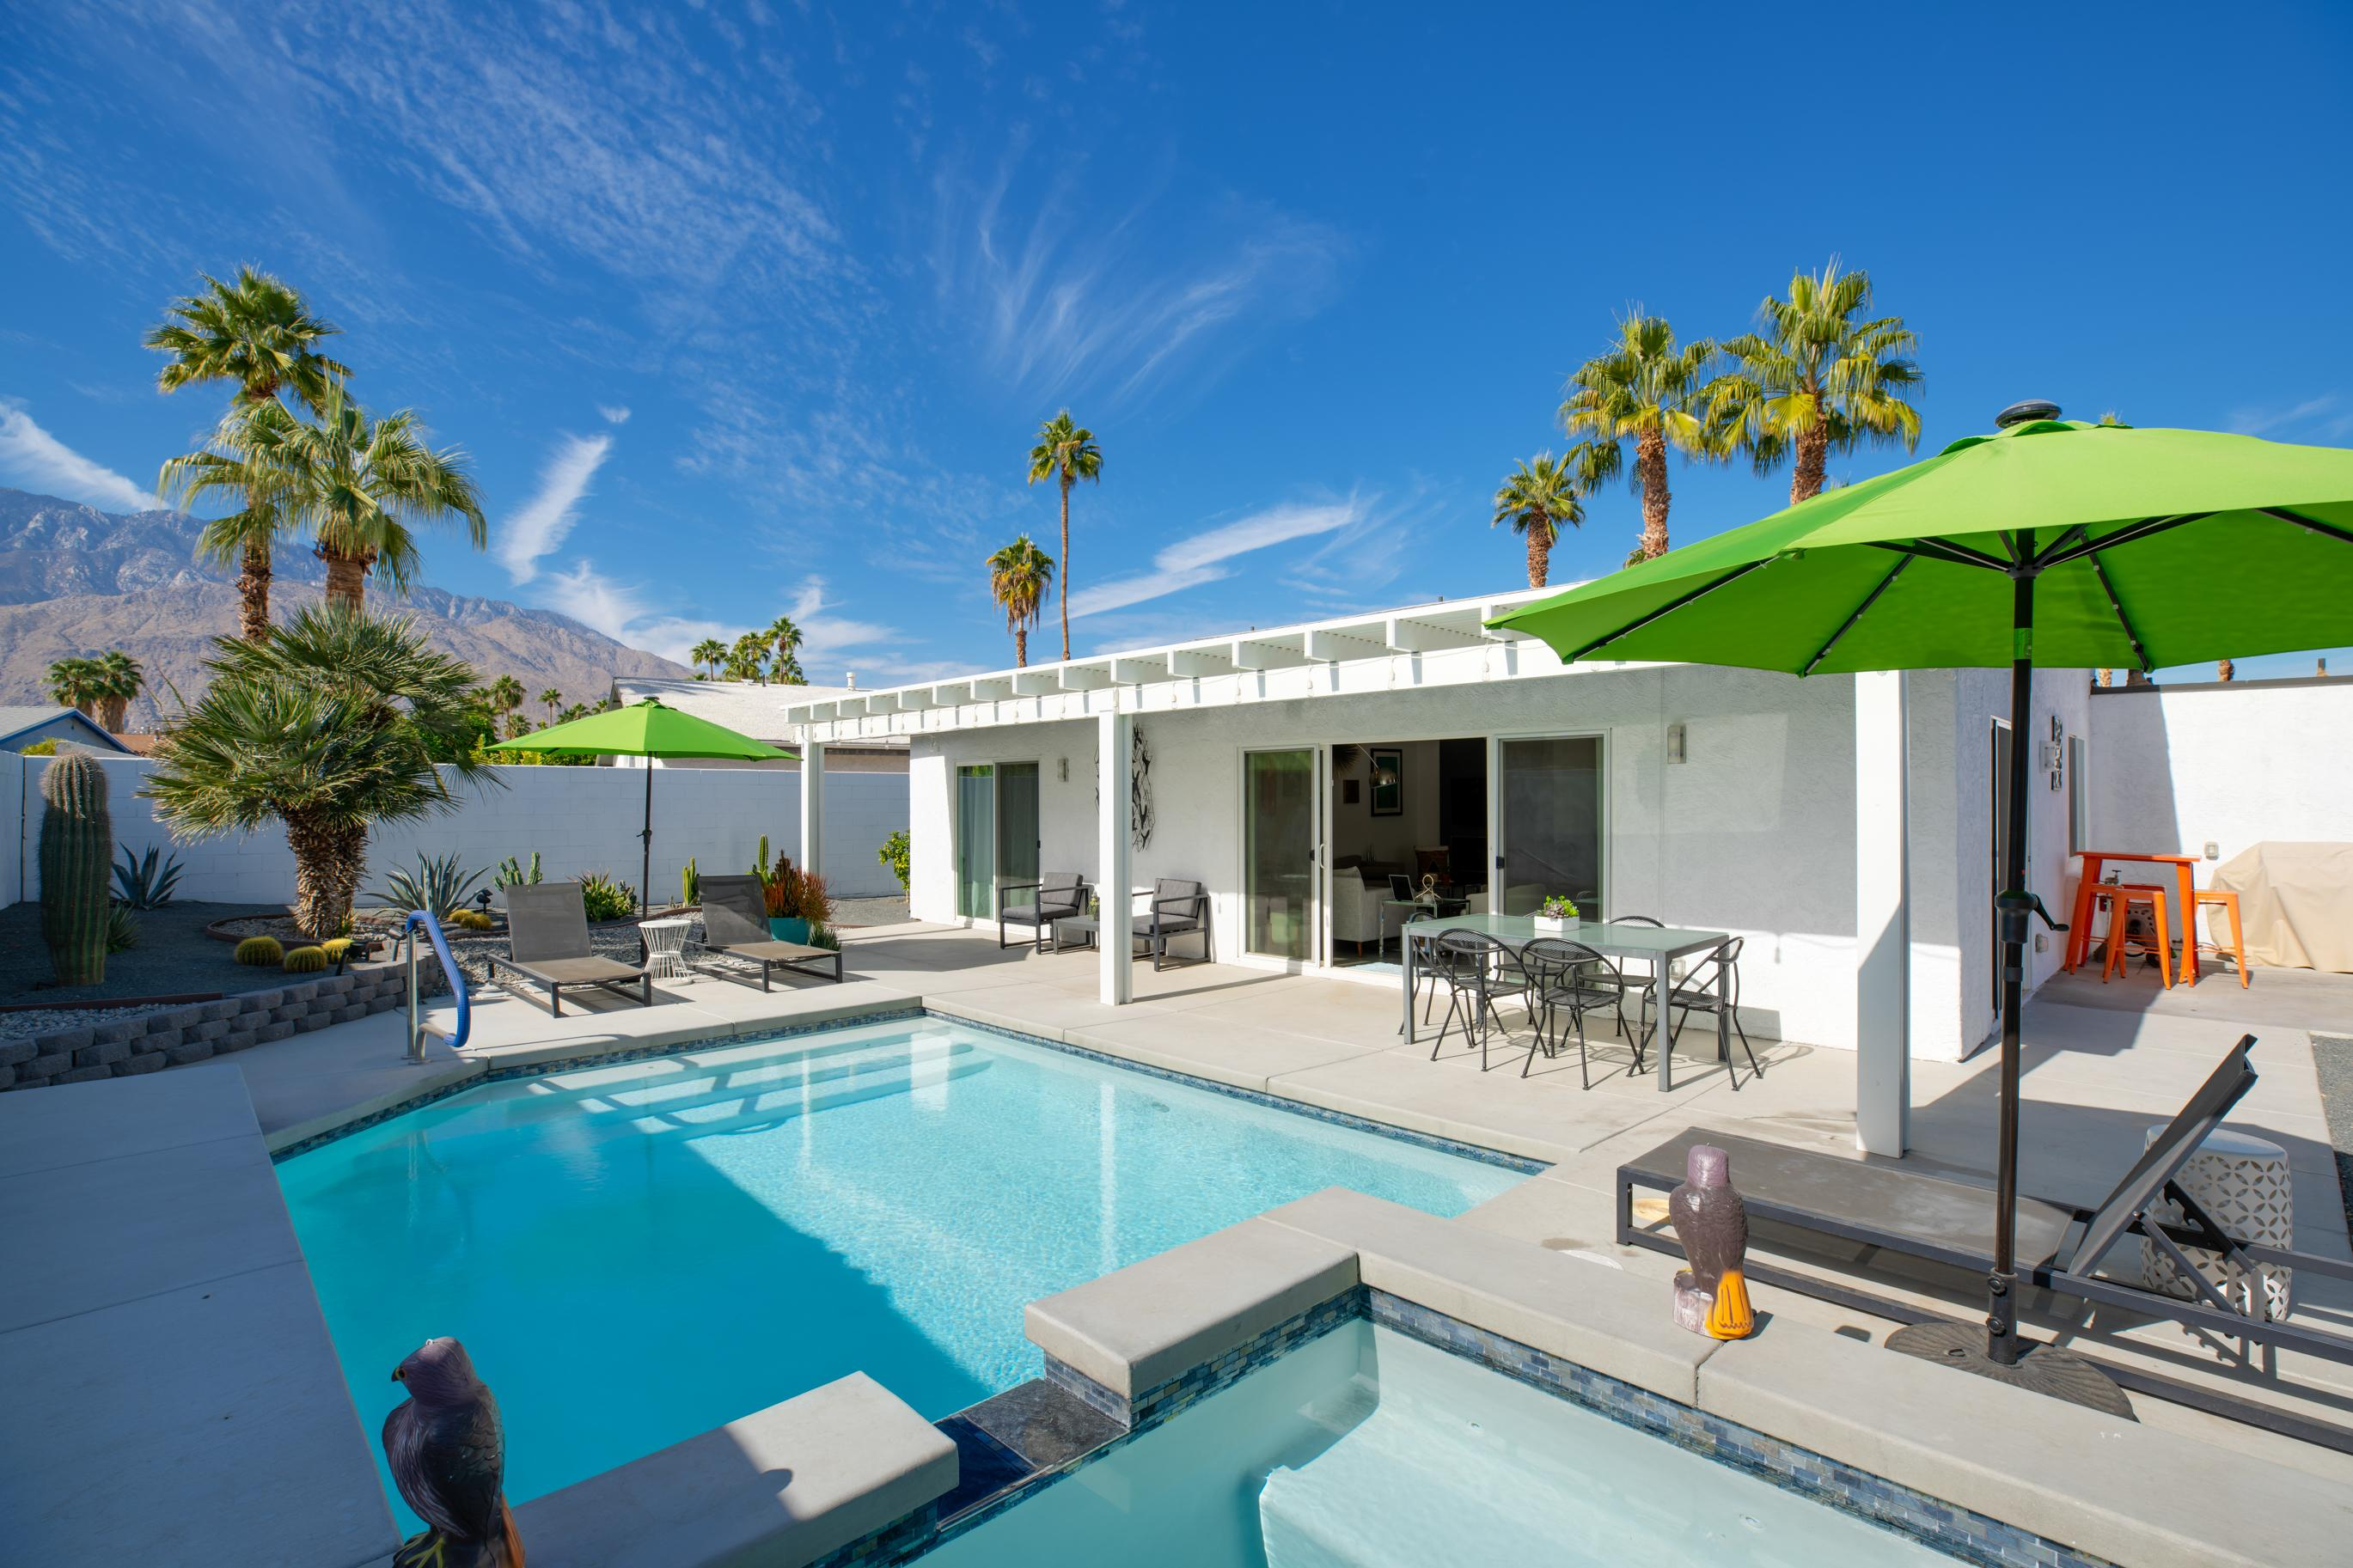 Welcome to Palm Springs! This posh getaway is professionally managed by TurnKey Vacation Rentals.